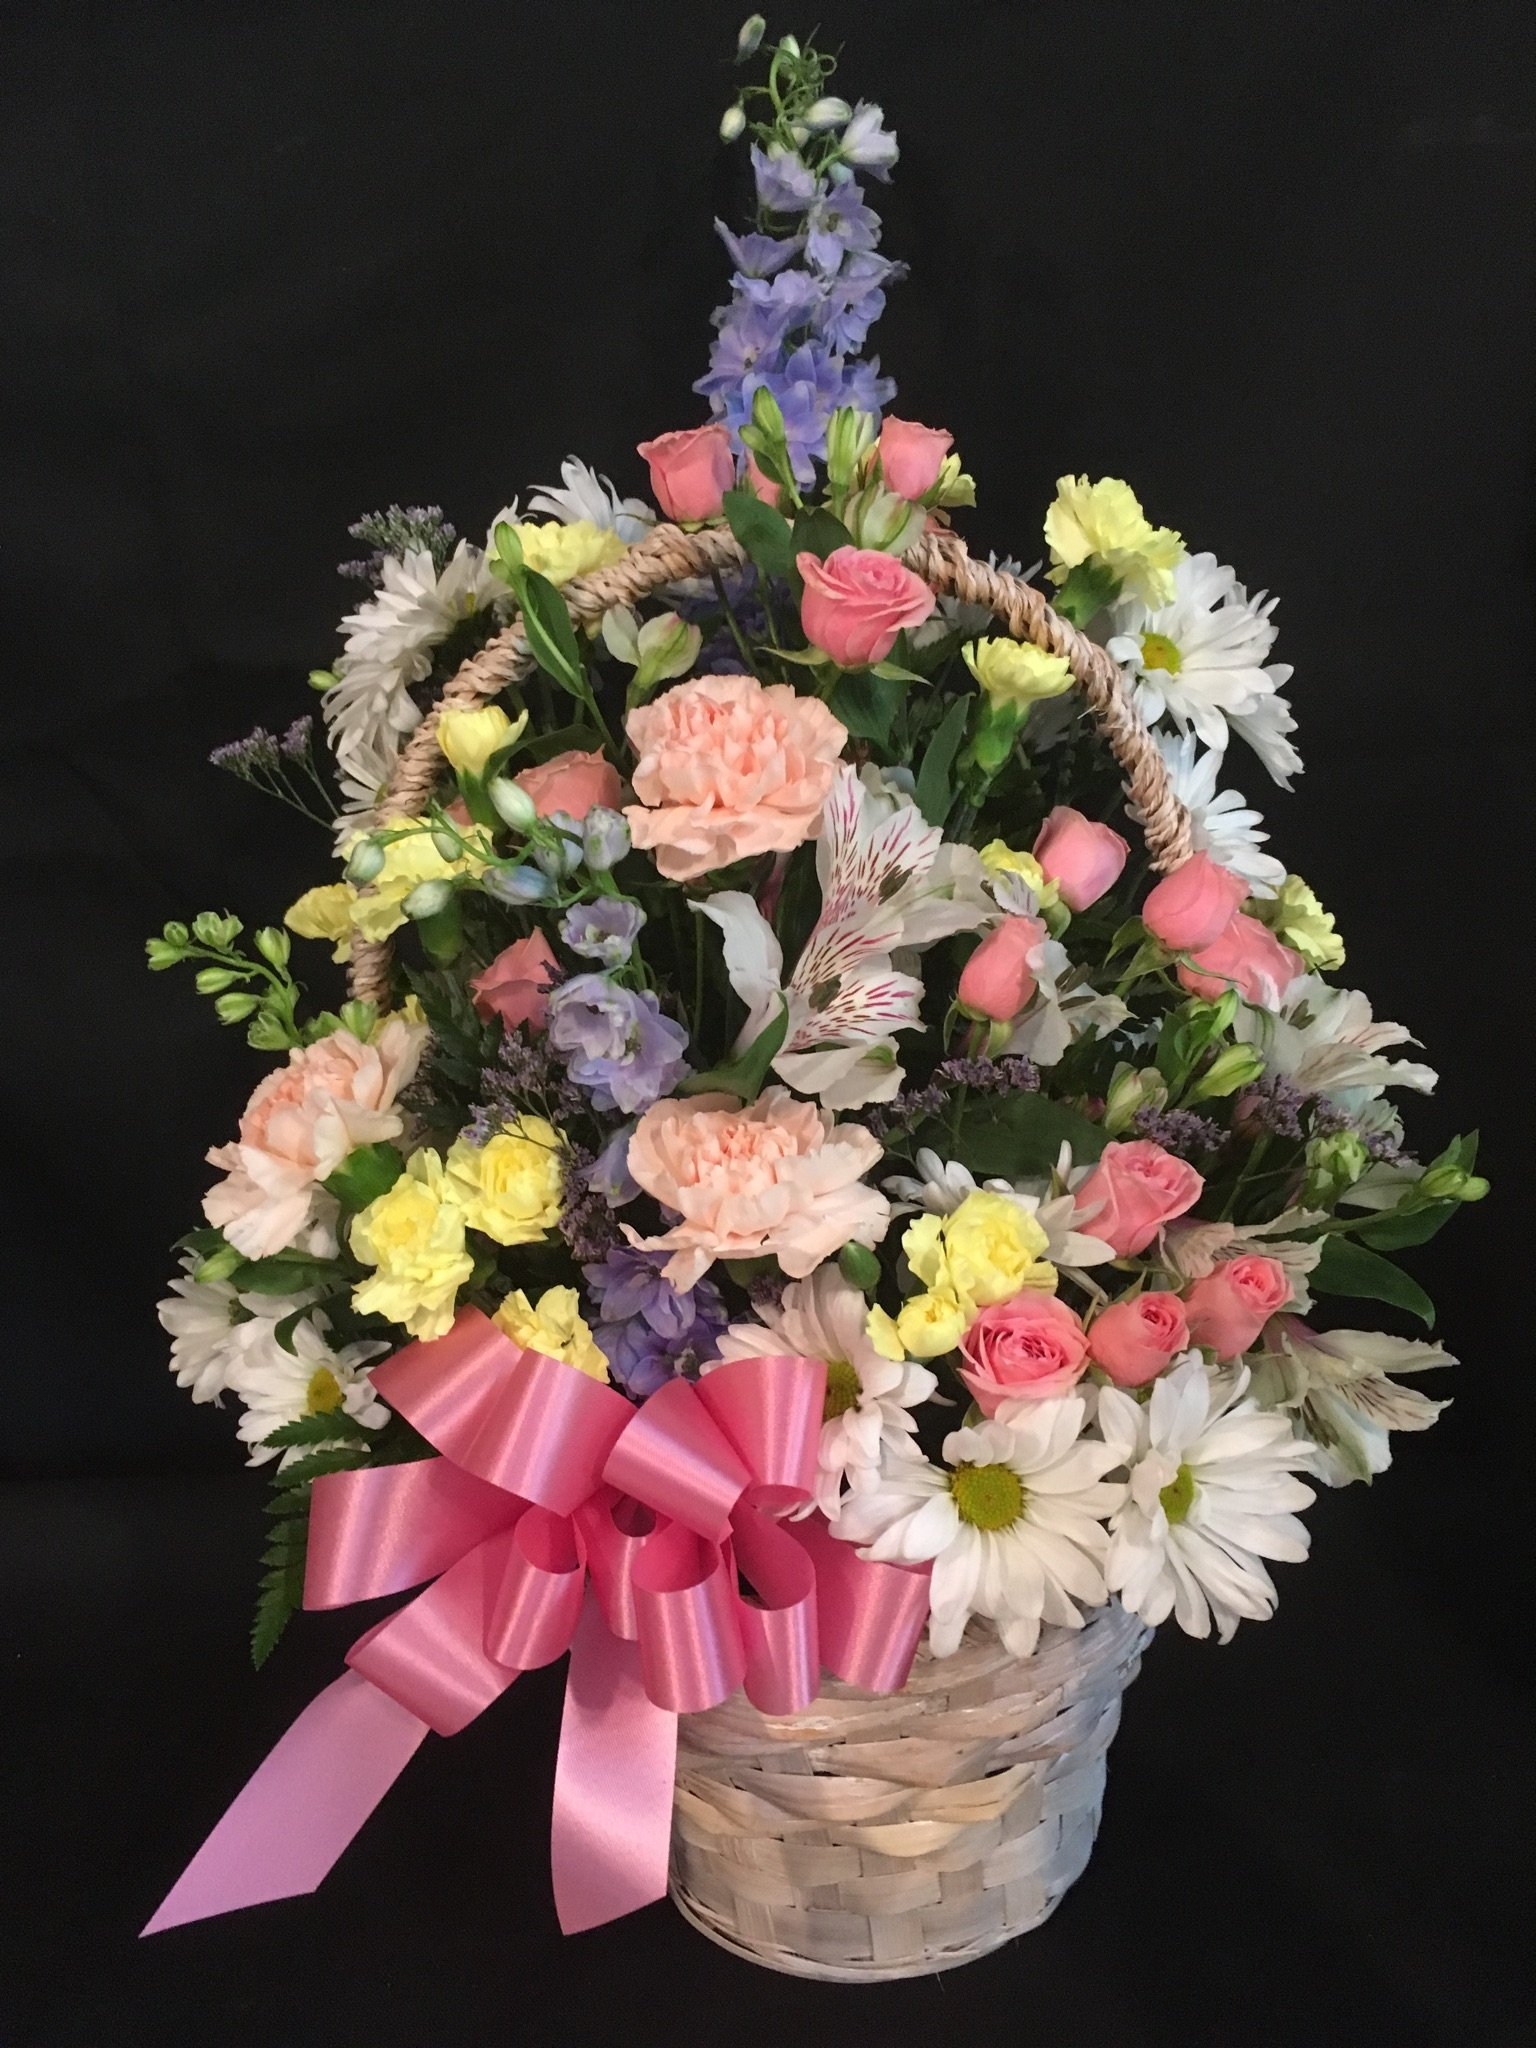 Funeral flowers gloversville ny lohse florist check out our funeral flowers in gloversville ny and surrounding areas please call for prices and availability izmirmasajfo